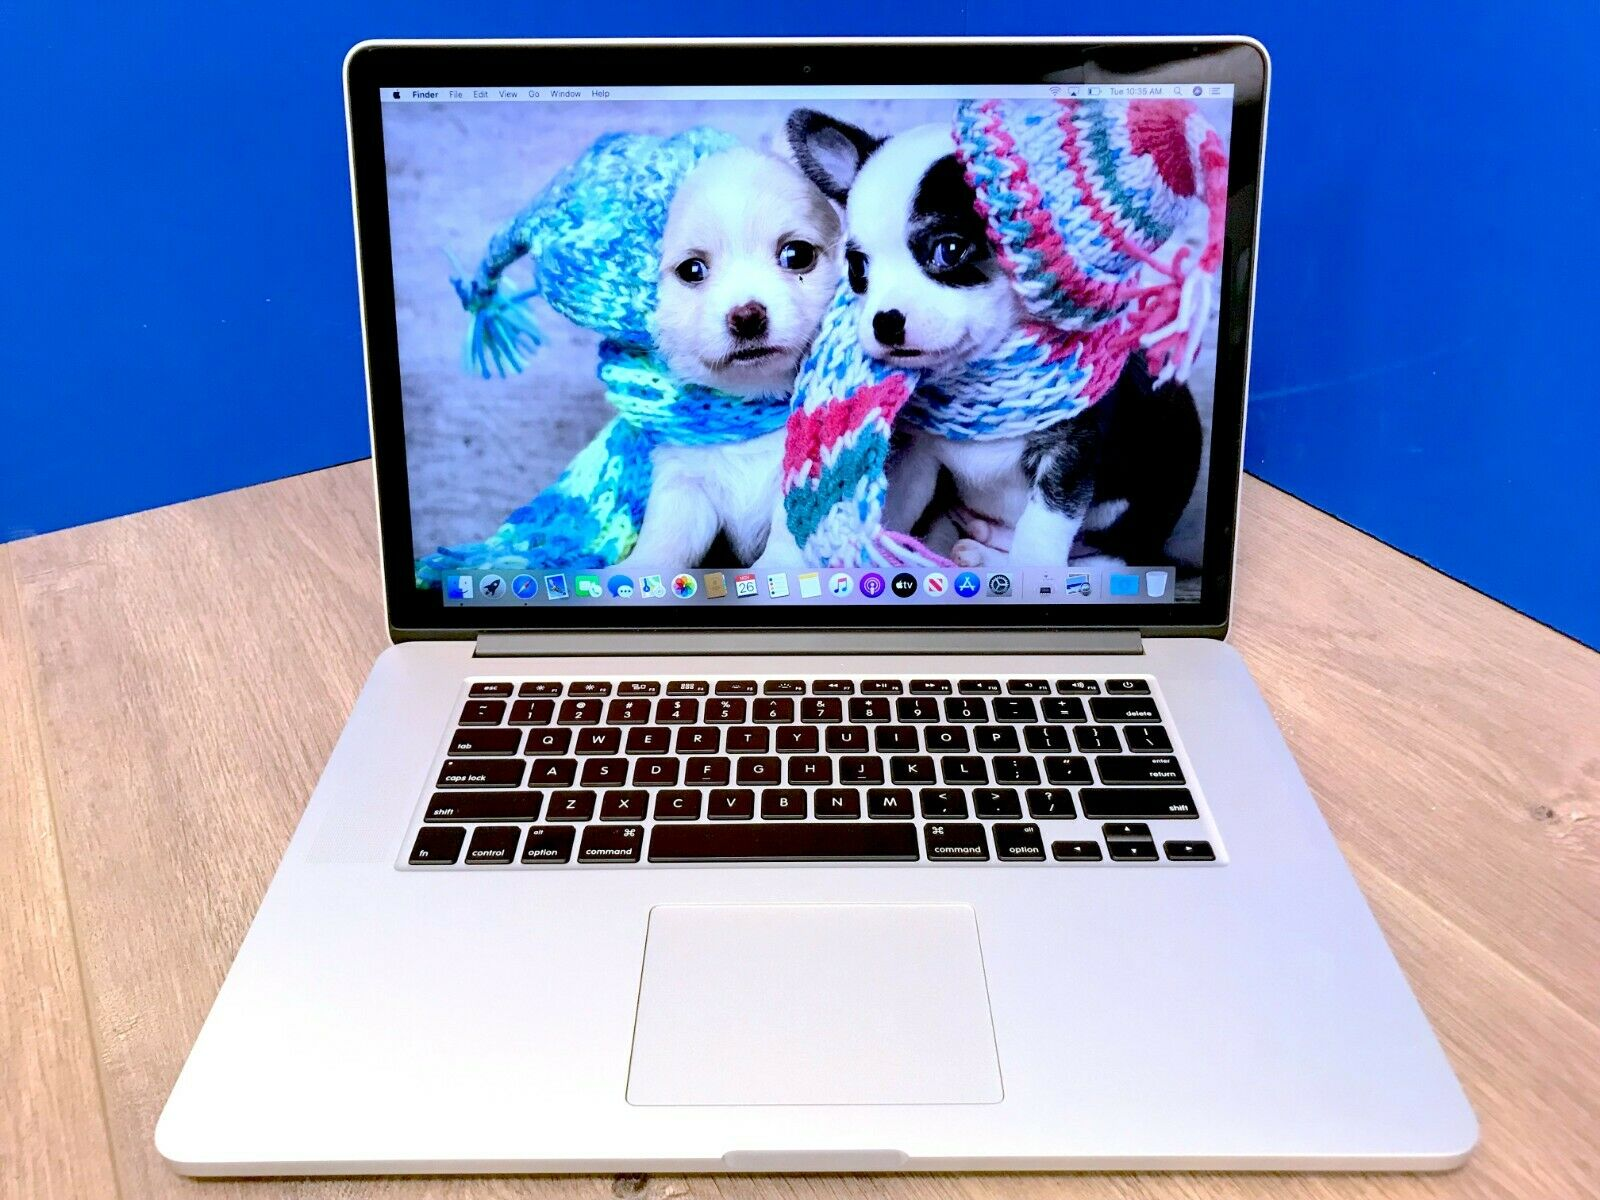 Apple MacBook Pro 15 | OS2019 | 512GB SSD | INTEL CORE i7 | RETINA | WARRANTY. Buy it now for 1149.00